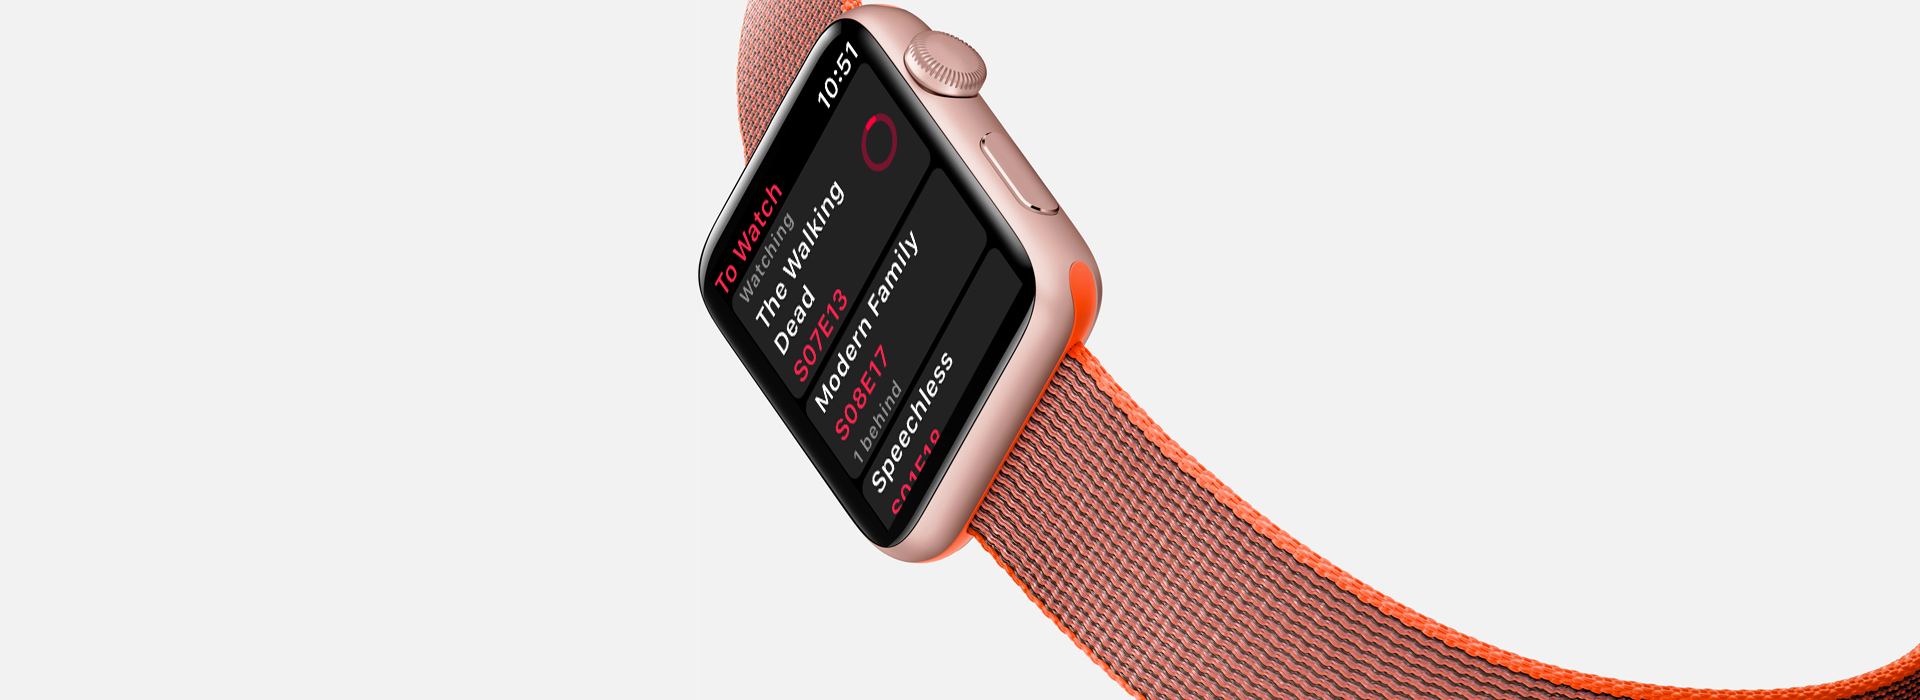 Episode Calendar.Serist 1 6 Apple Watch Calendar Redesigned User Screen Episode